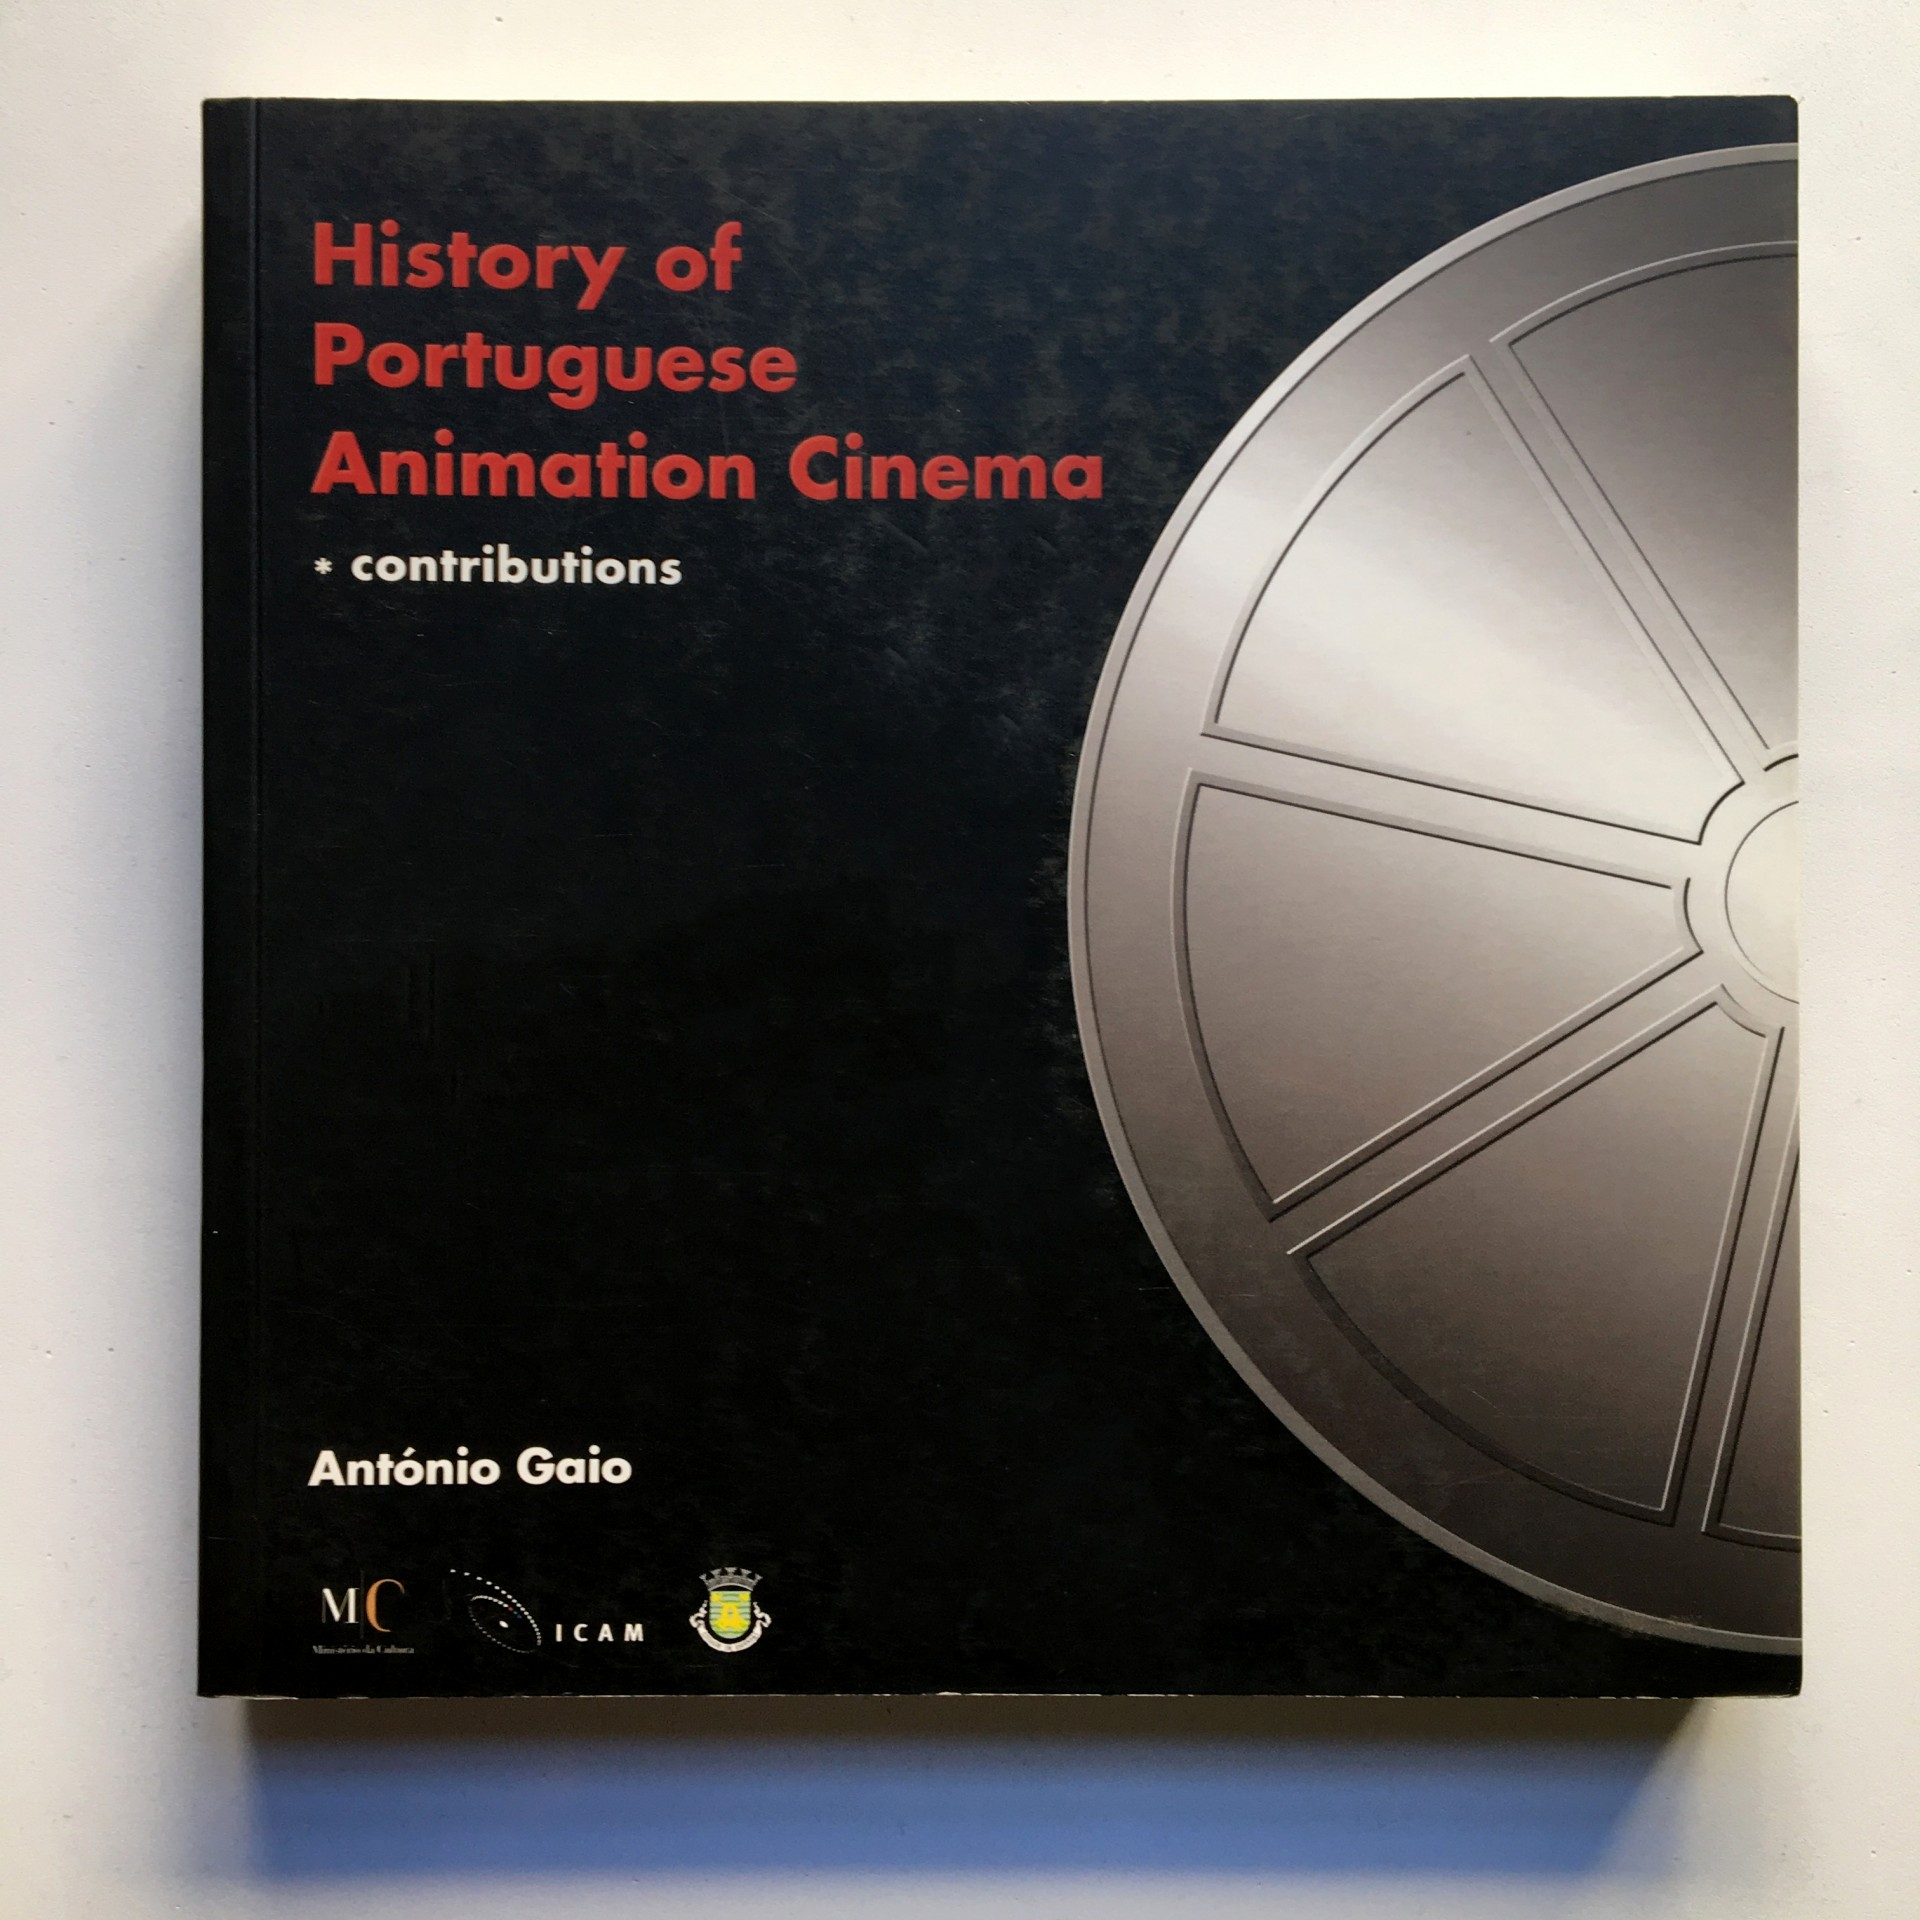 History of Portuguese Animation